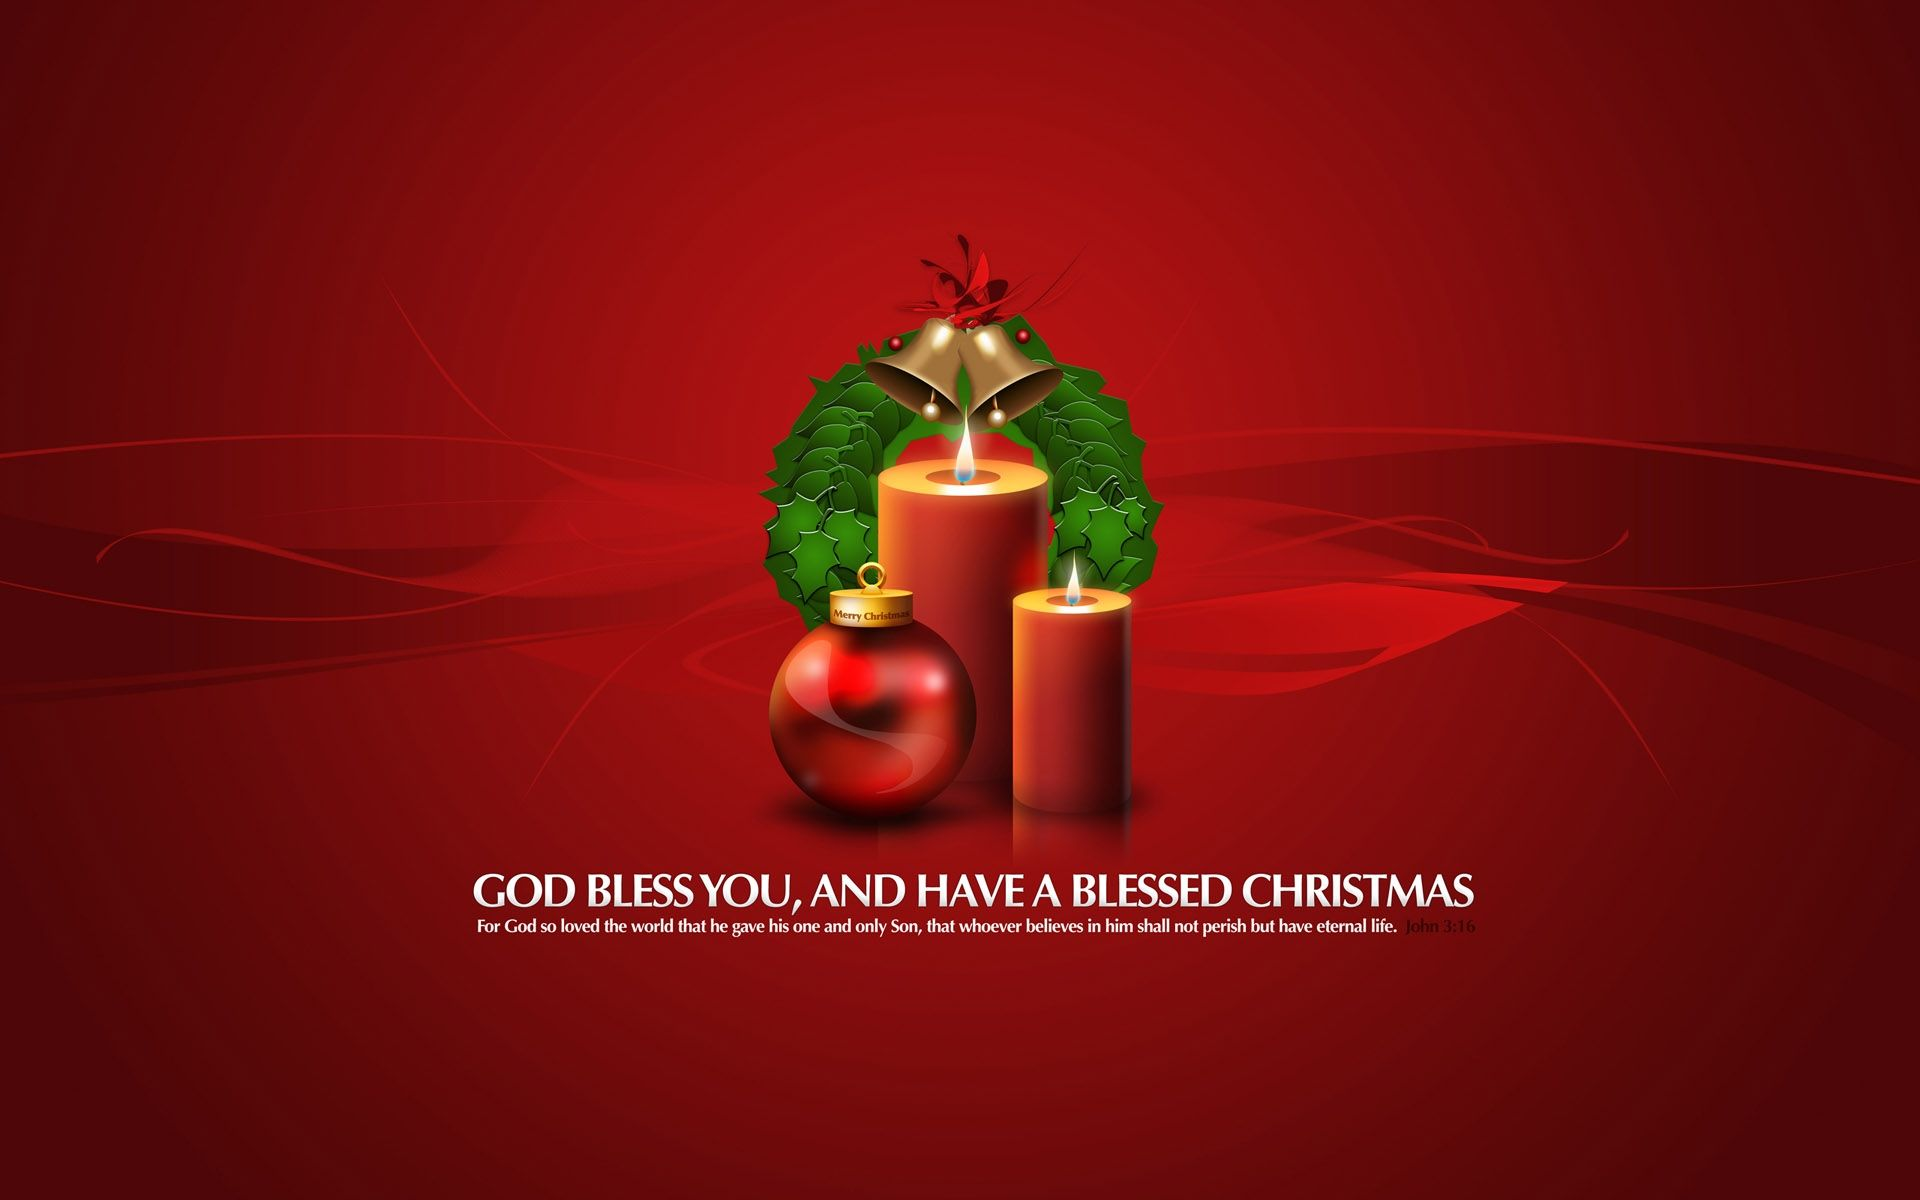 Multiple Wallpapers Are Included In Our Christmas Theme.